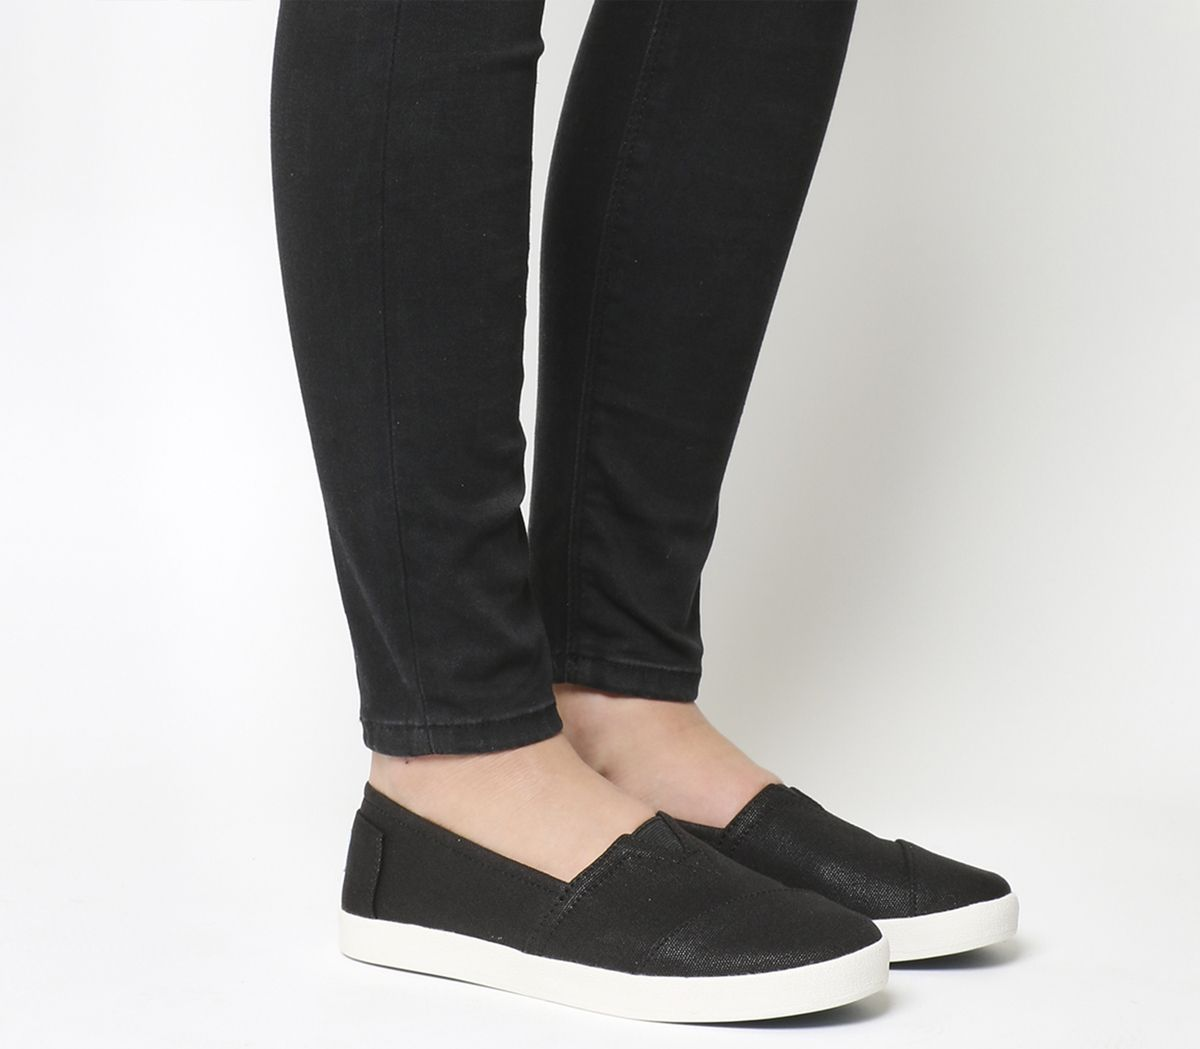 0c4b9b61371 Toms Avalon Sneaker Black Coated Canvas - Flats